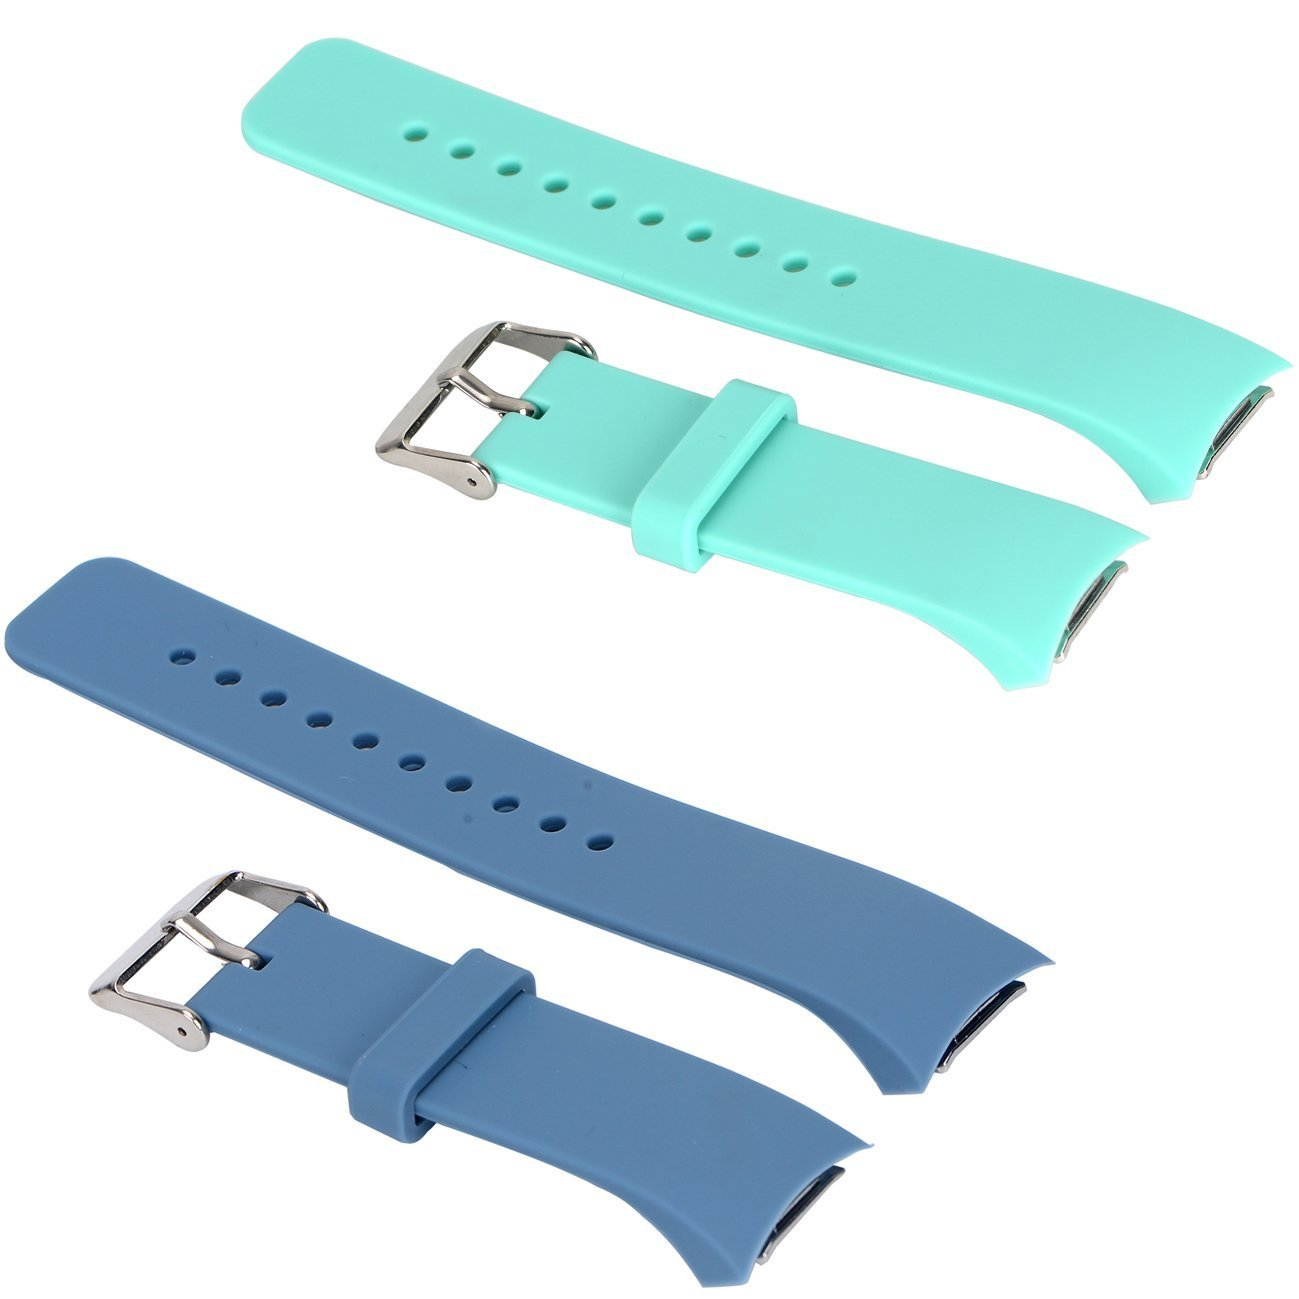 E ECSEM 2pcs Small Bands for Gear Fit2 Pro Watch, Replacement Soft Silicone Bands Straps for Samsung Gear Fit2 Pro Smart Fitness Band and Samsung Gear Fit2 Smartwatch : Slate+Teal